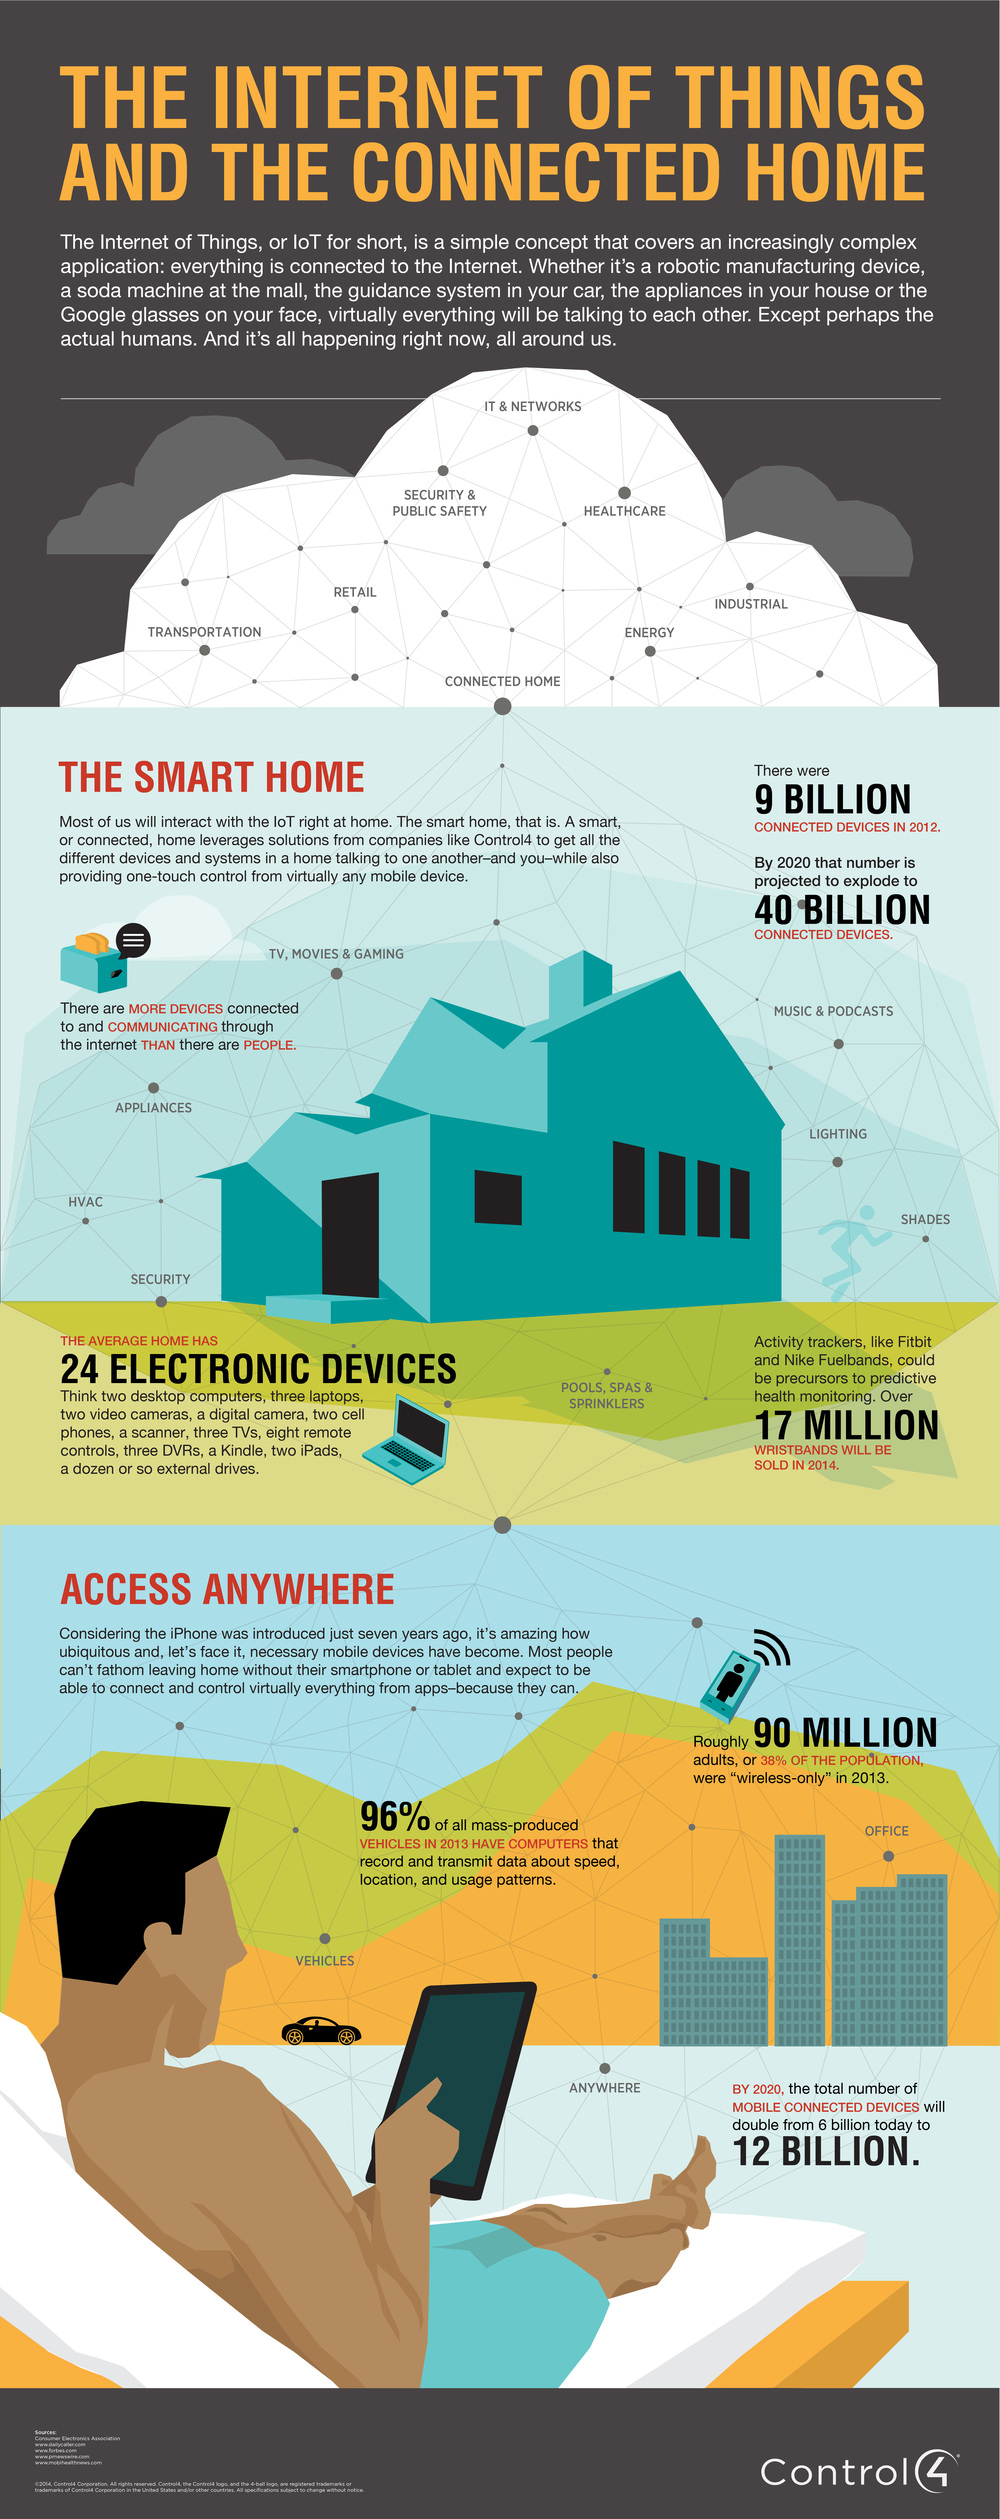 Control4_Infographic_InternetofThings_highres-01.jpg